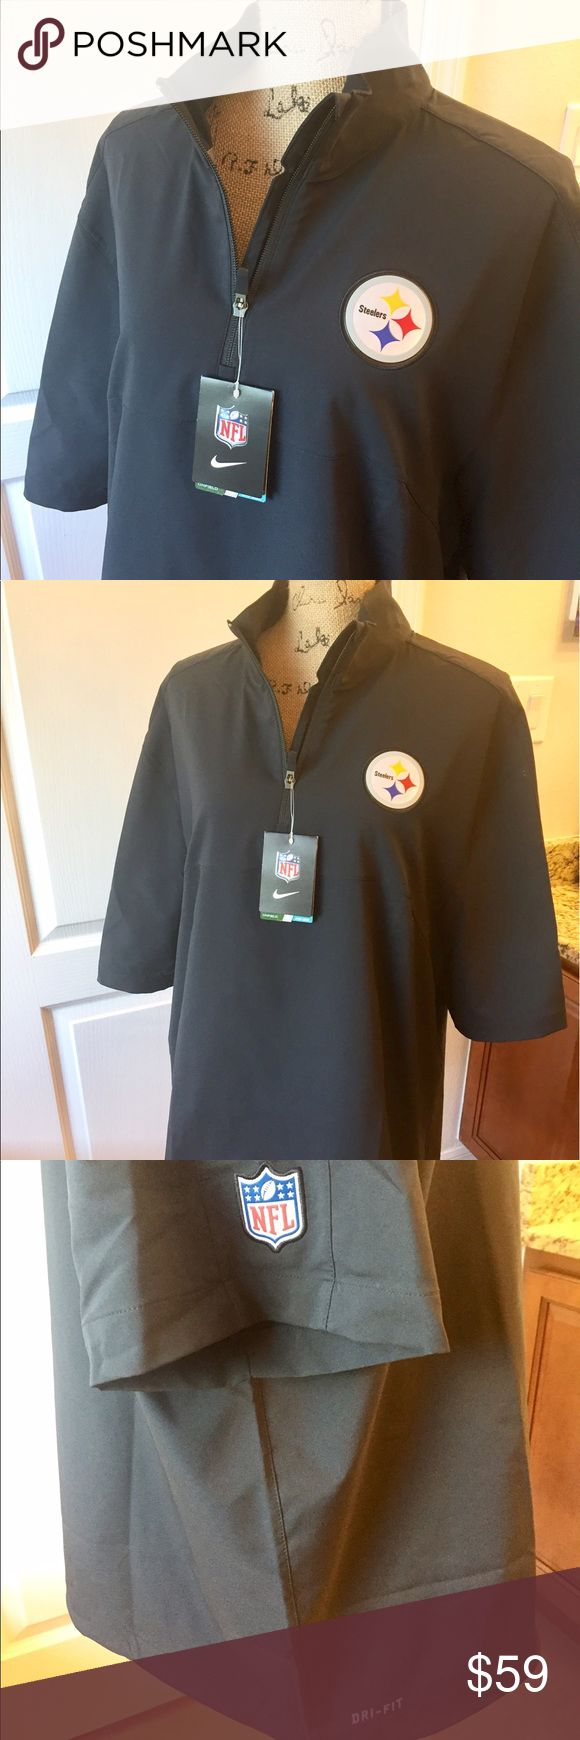 NWT - Nike NFL Steelers Zip Black Men's Size Large NWT - Nike NFL Pittsburgh Steelers Hot Jacket Qt. Zip Black Men's Size Large. Get ready for the season with this Steelers Elite Coaches Alt Dri-FIT half-zip jacket from Nike! The festive Steelers graphics and colors will let everyone know where your allegiances lie. Material: 100% Polyester Dri-FIT technology wicks away moisture, Olympic collar, 1/2-Zip Machine wash, tumble dry low.   🤔 Ask any & all questions ✅Use Offer Button 🚭…